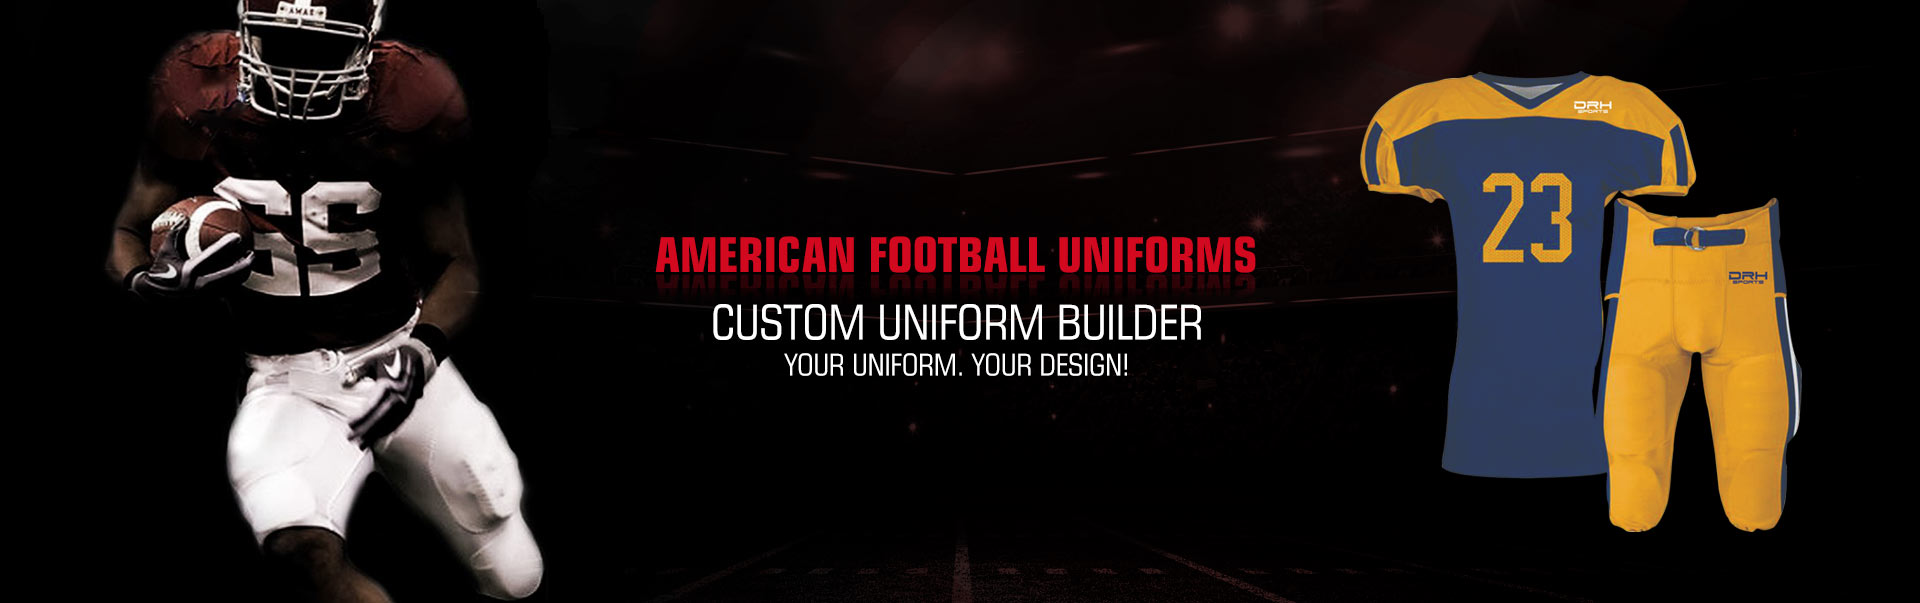 American Football Uniform Wholesaler, Suppliers in Columbia